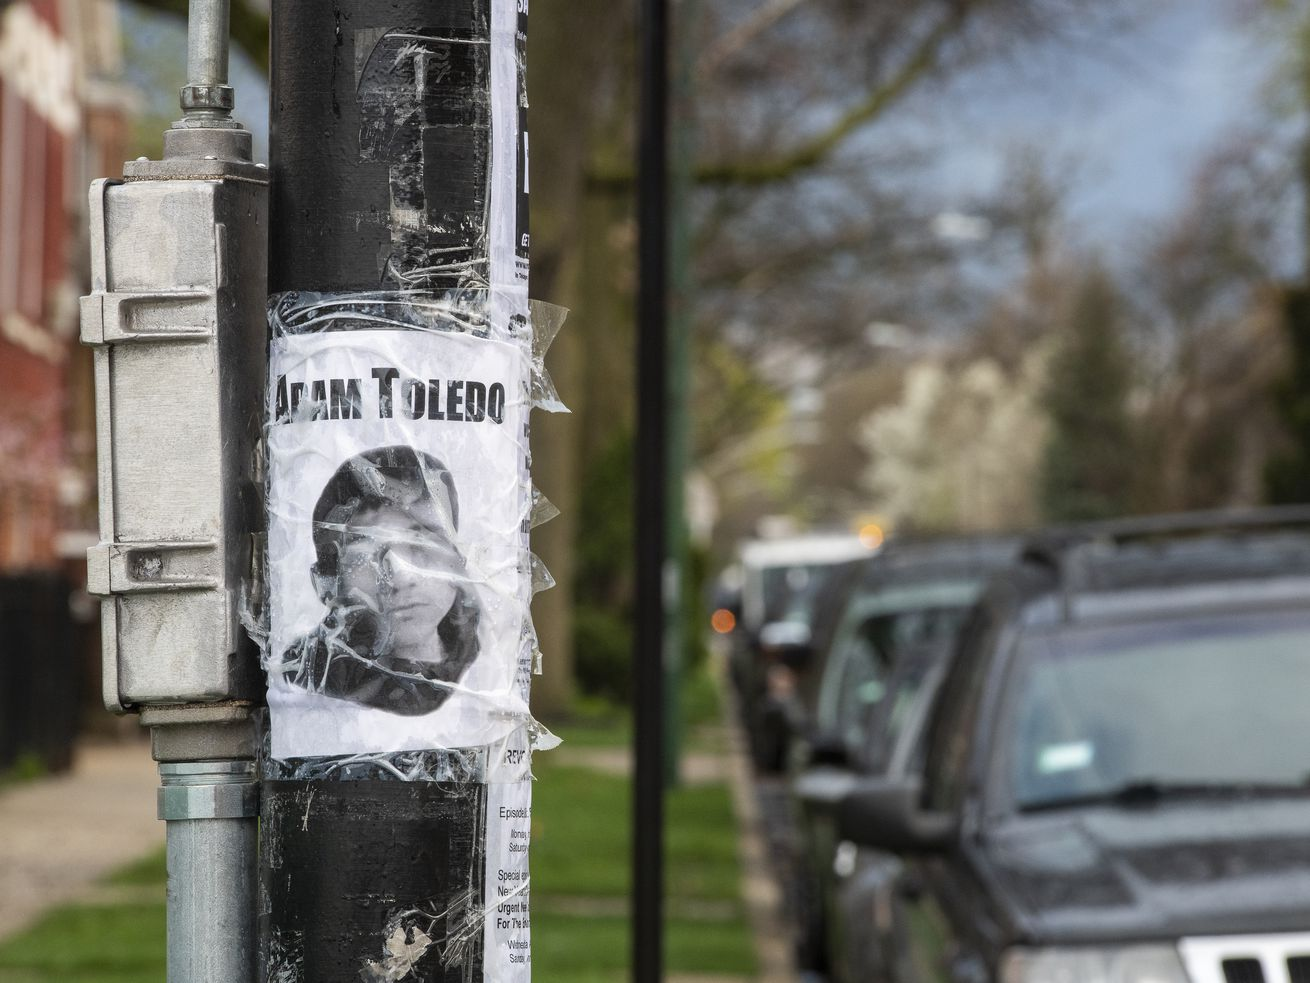 A picture of Adam Toledo is taped to a pole at the corner of 24th St. and Spaulding Ave. in the Little Village neighborhood.